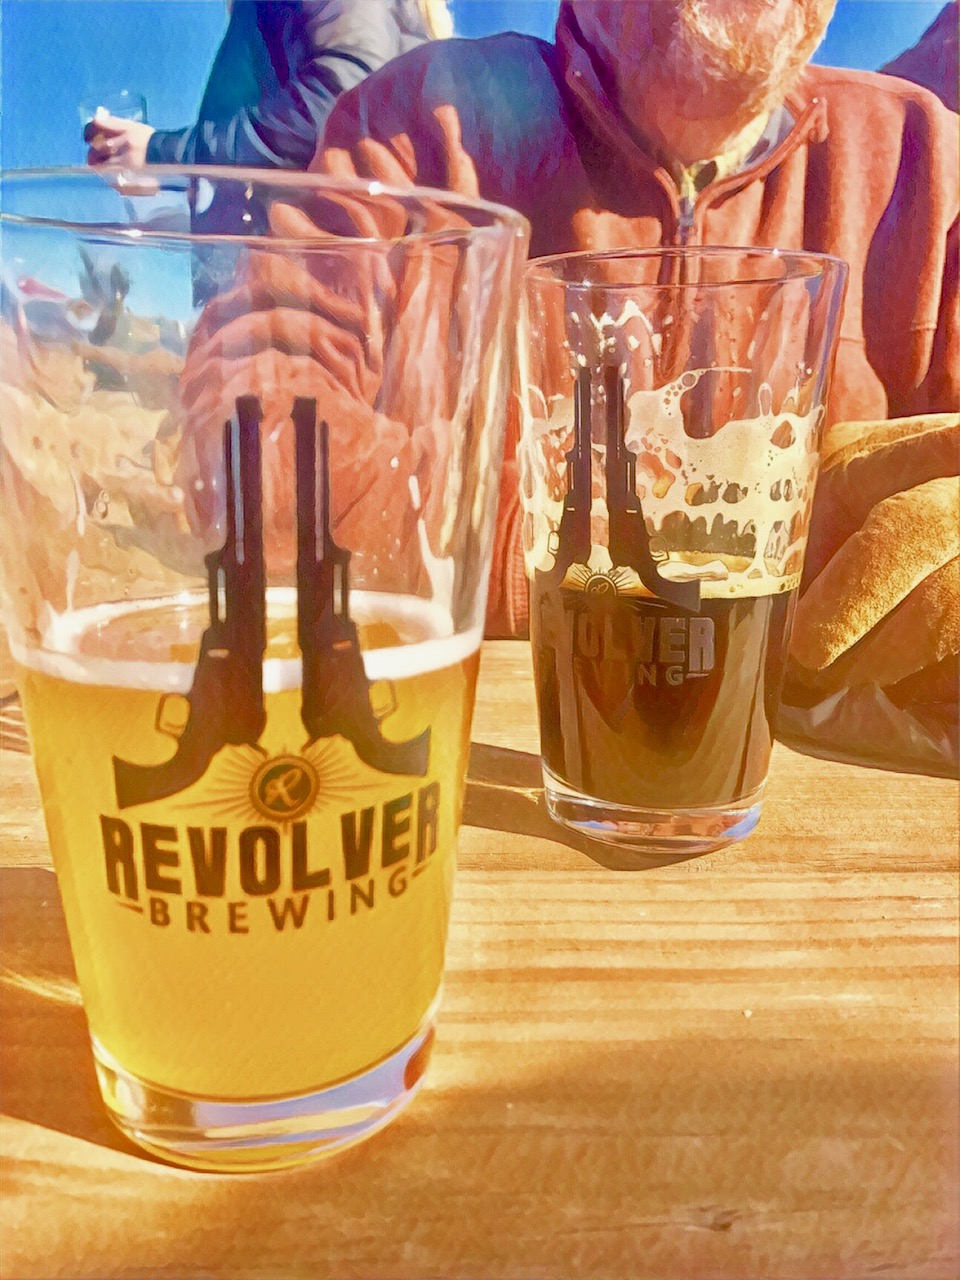 Revolver Brewing Company in Granbury Texas is an amazing microbrewery in Granbury Texas #Revolverbrewery #Granburytexas